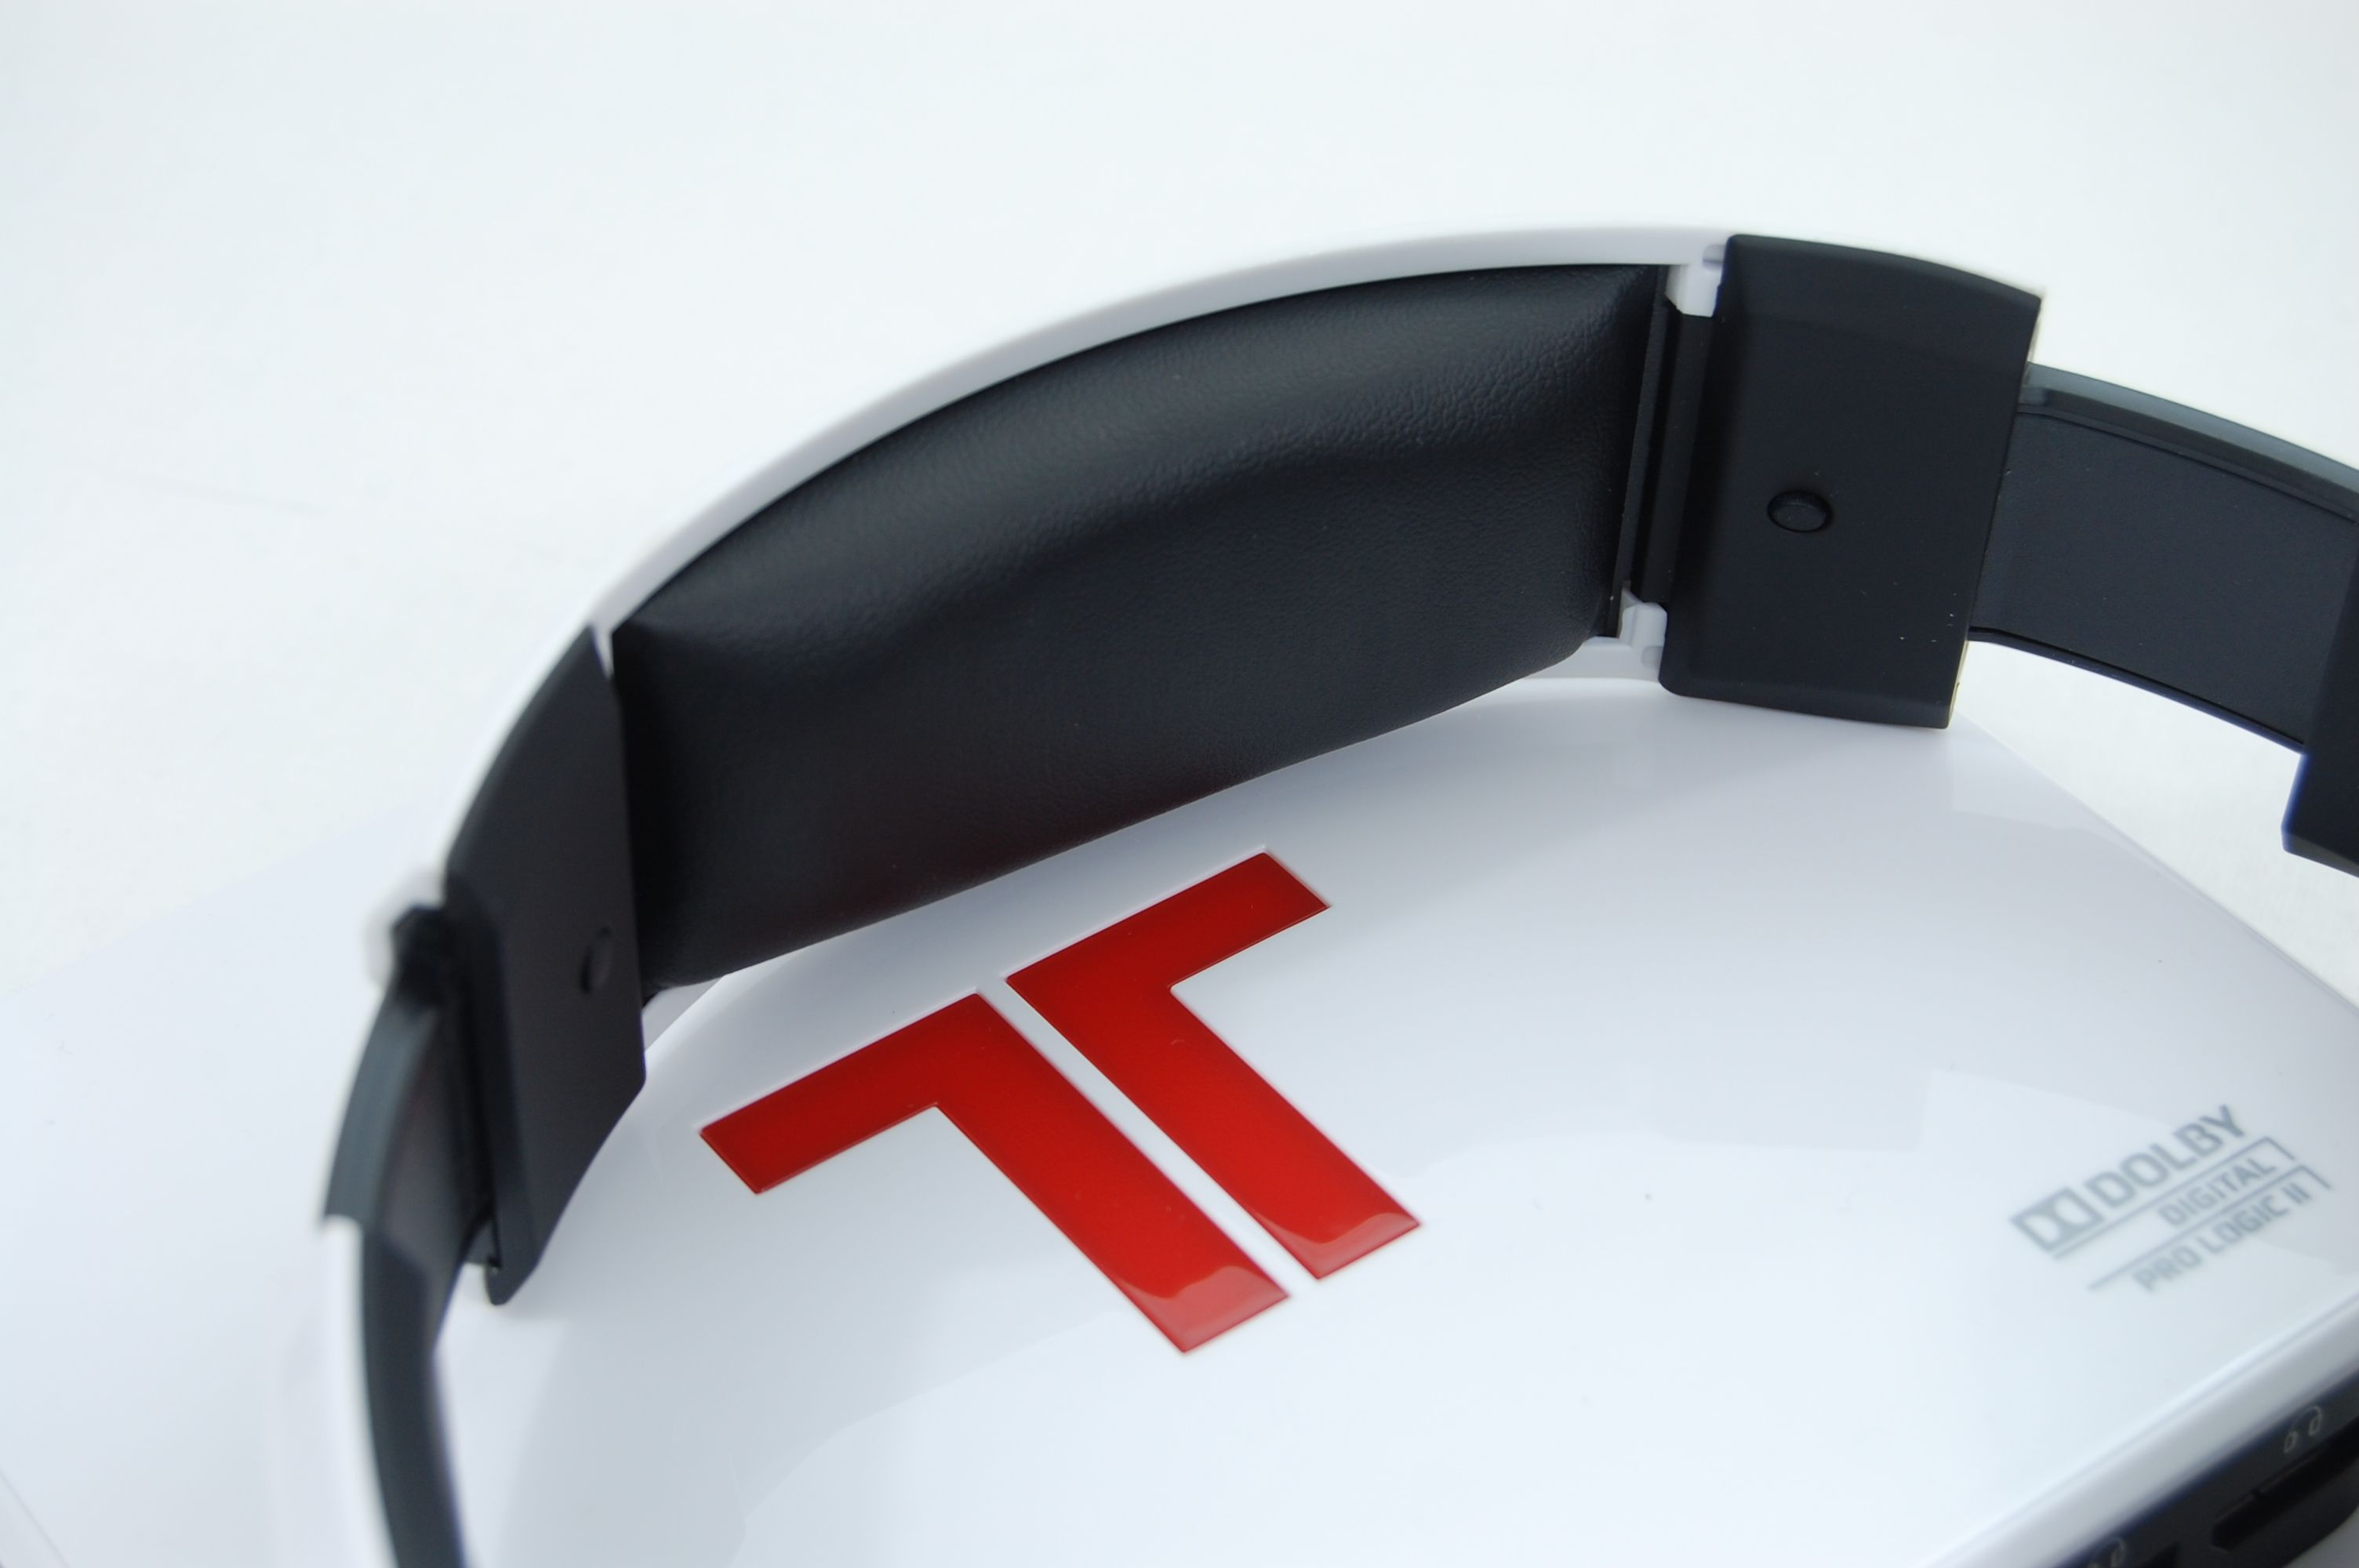 Tritton by MadCatz Pro+ 5.1 Surround Gaming Headset Review - Headband Padding